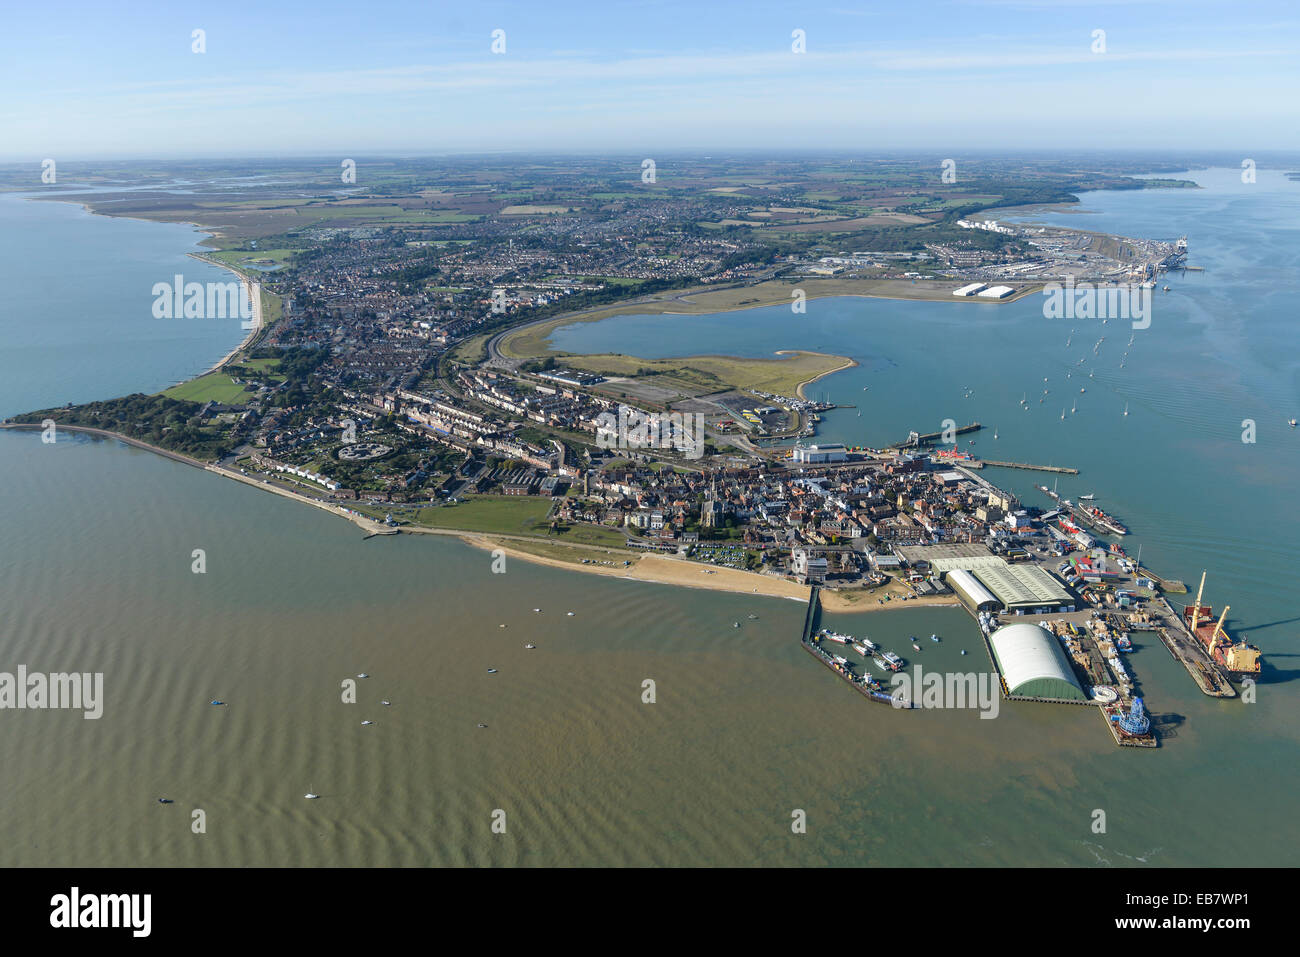 An aerial view of the Essex town of Harwich on a clear sunny day - Stock Image